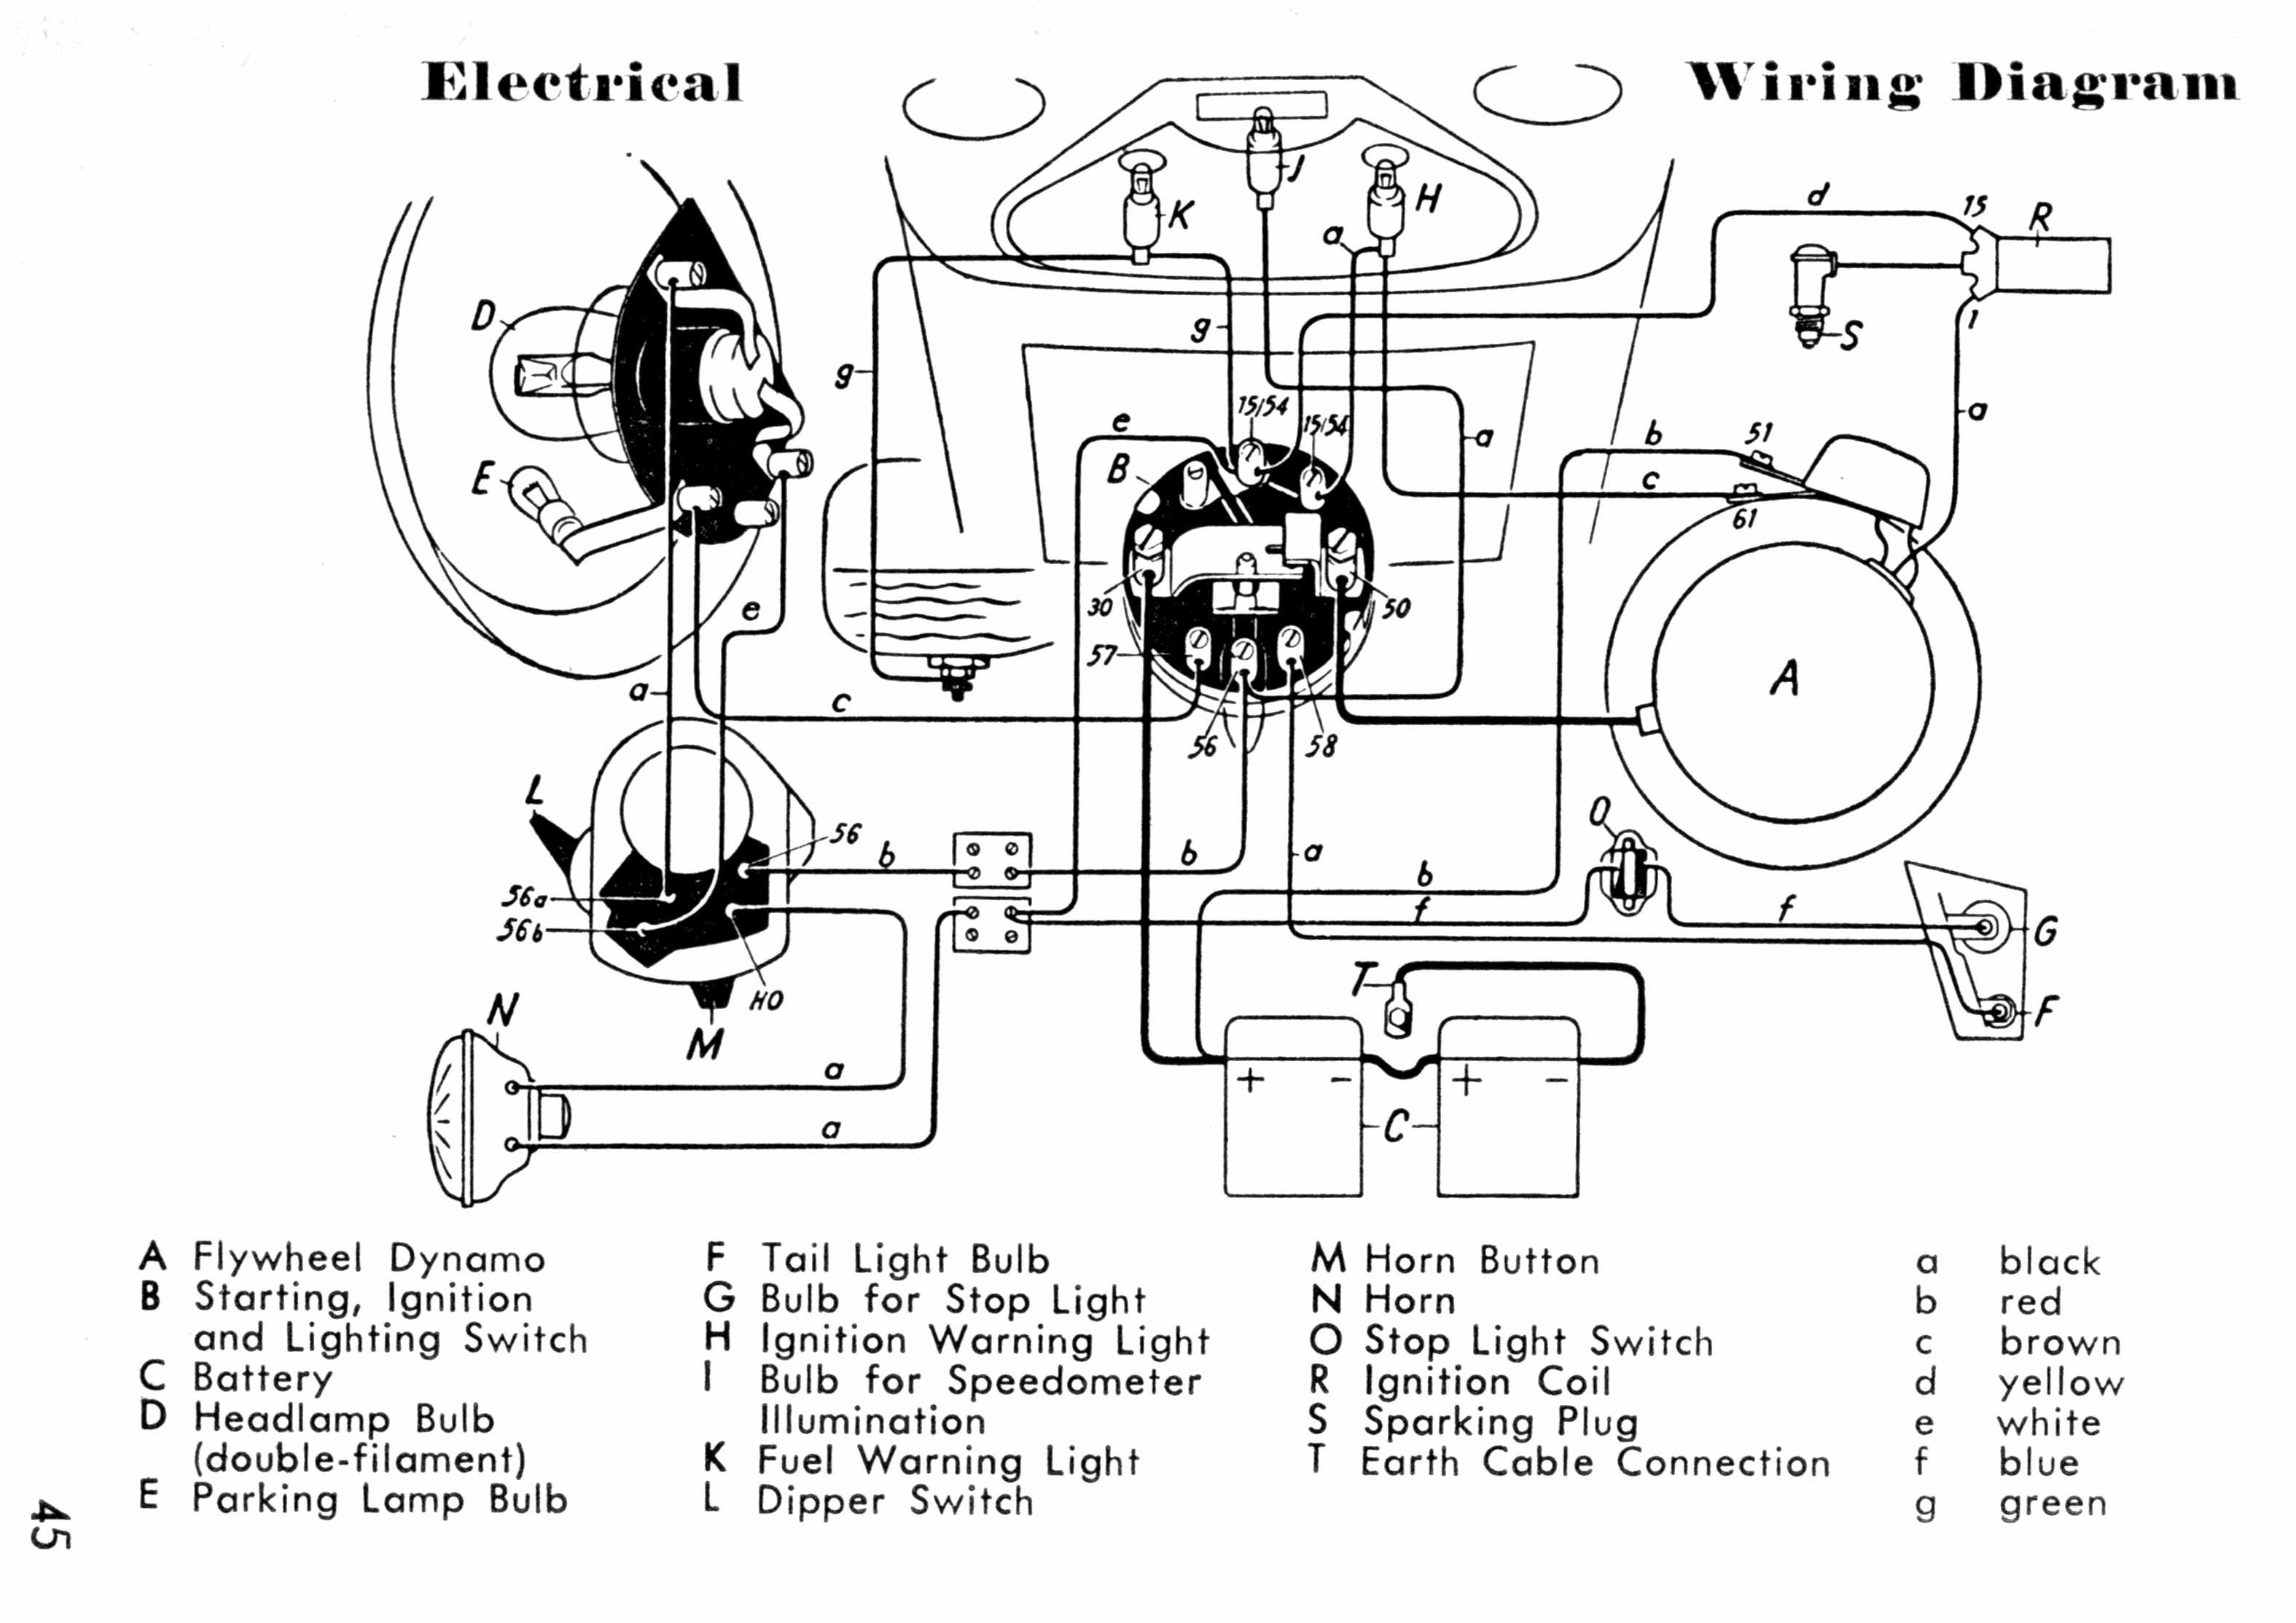 bad boy buggies 05 48v wiring diagram  bad boy buggy 4x4  bad boy buggies parts diagram  bad boy